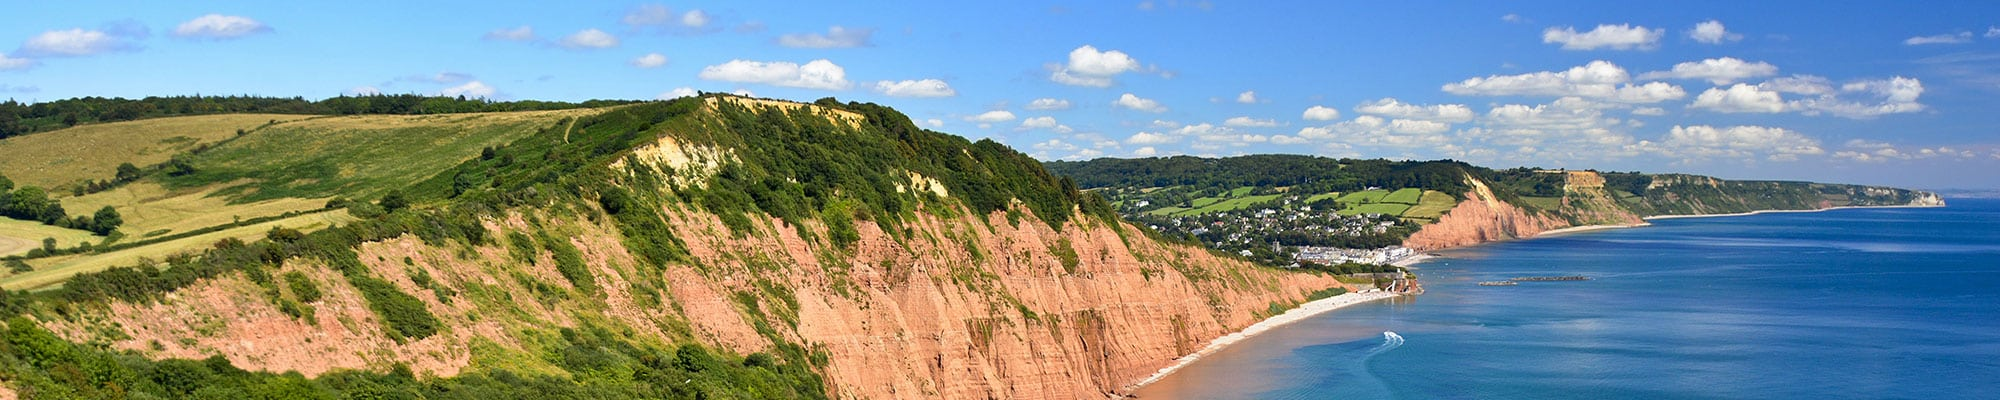 Mortgages in Sidmouth